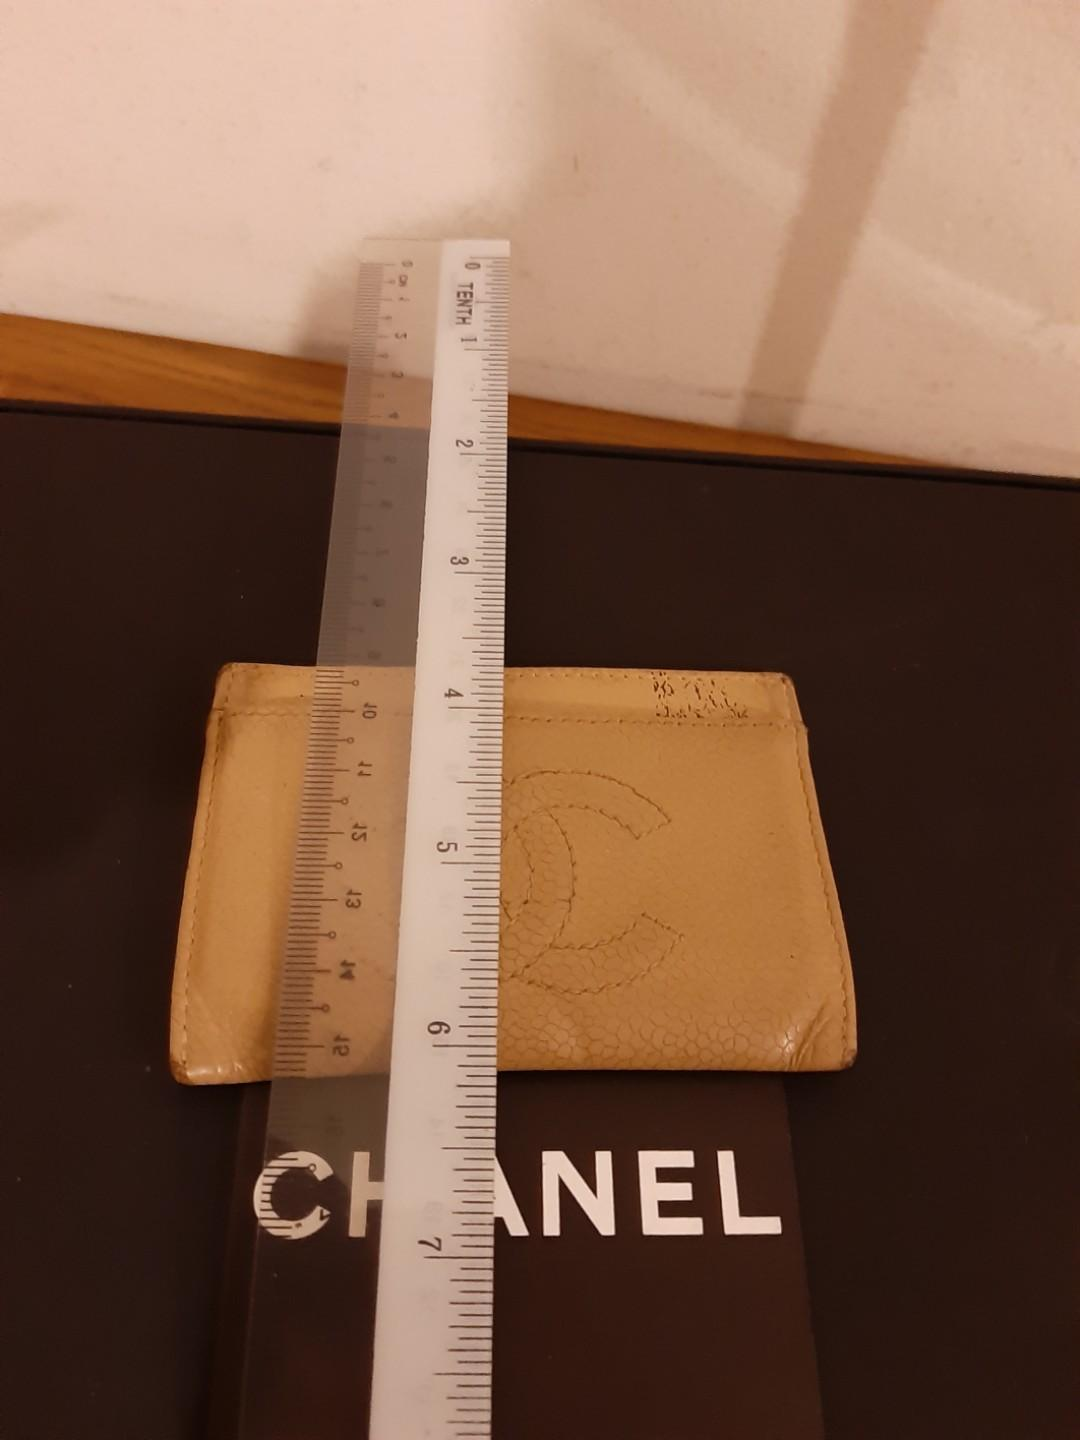 AUTHENTIC CHANEL CC LOGO CARD HOLDER - BROWN CAVIAR LEATHER - HOLOGRAM SERIAL STICKER INTACT- INTERIOR POCKET SLOTS  CLEAN - (CHANEL CARD HOLDERS NOW RETAIL OVER RM 2000+)